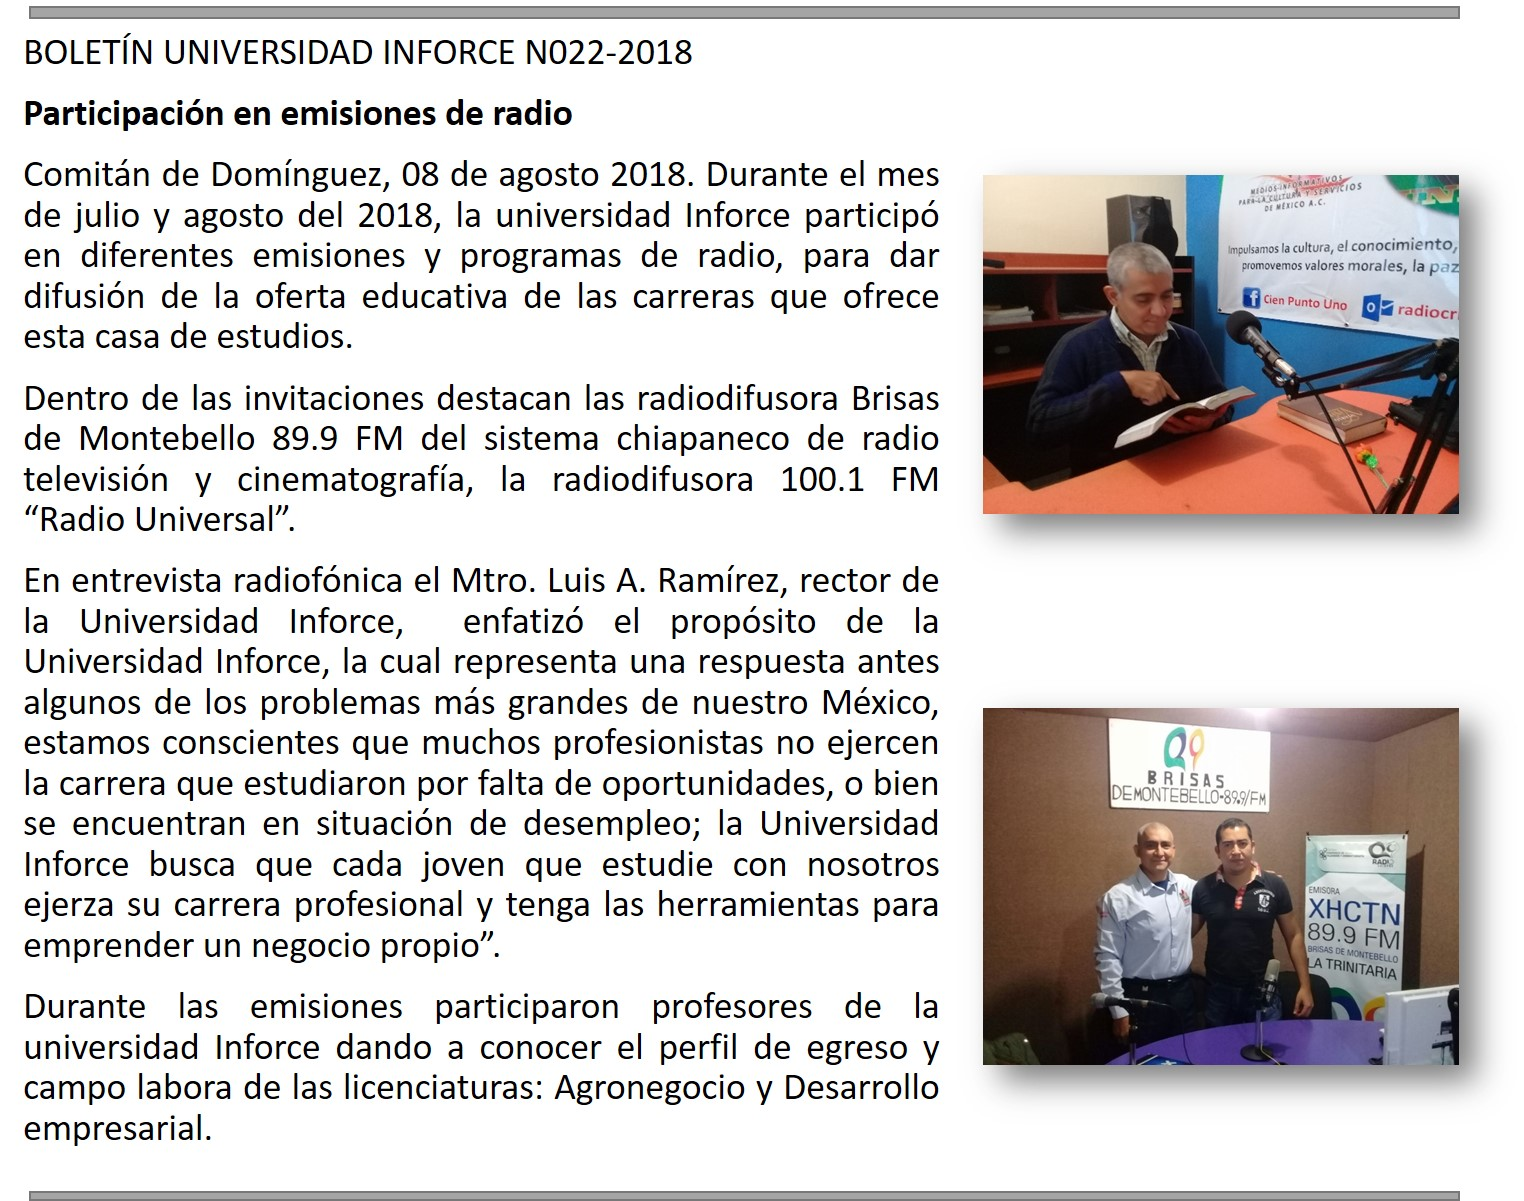 boletin-universidad-inforce-n022-2018.jpg